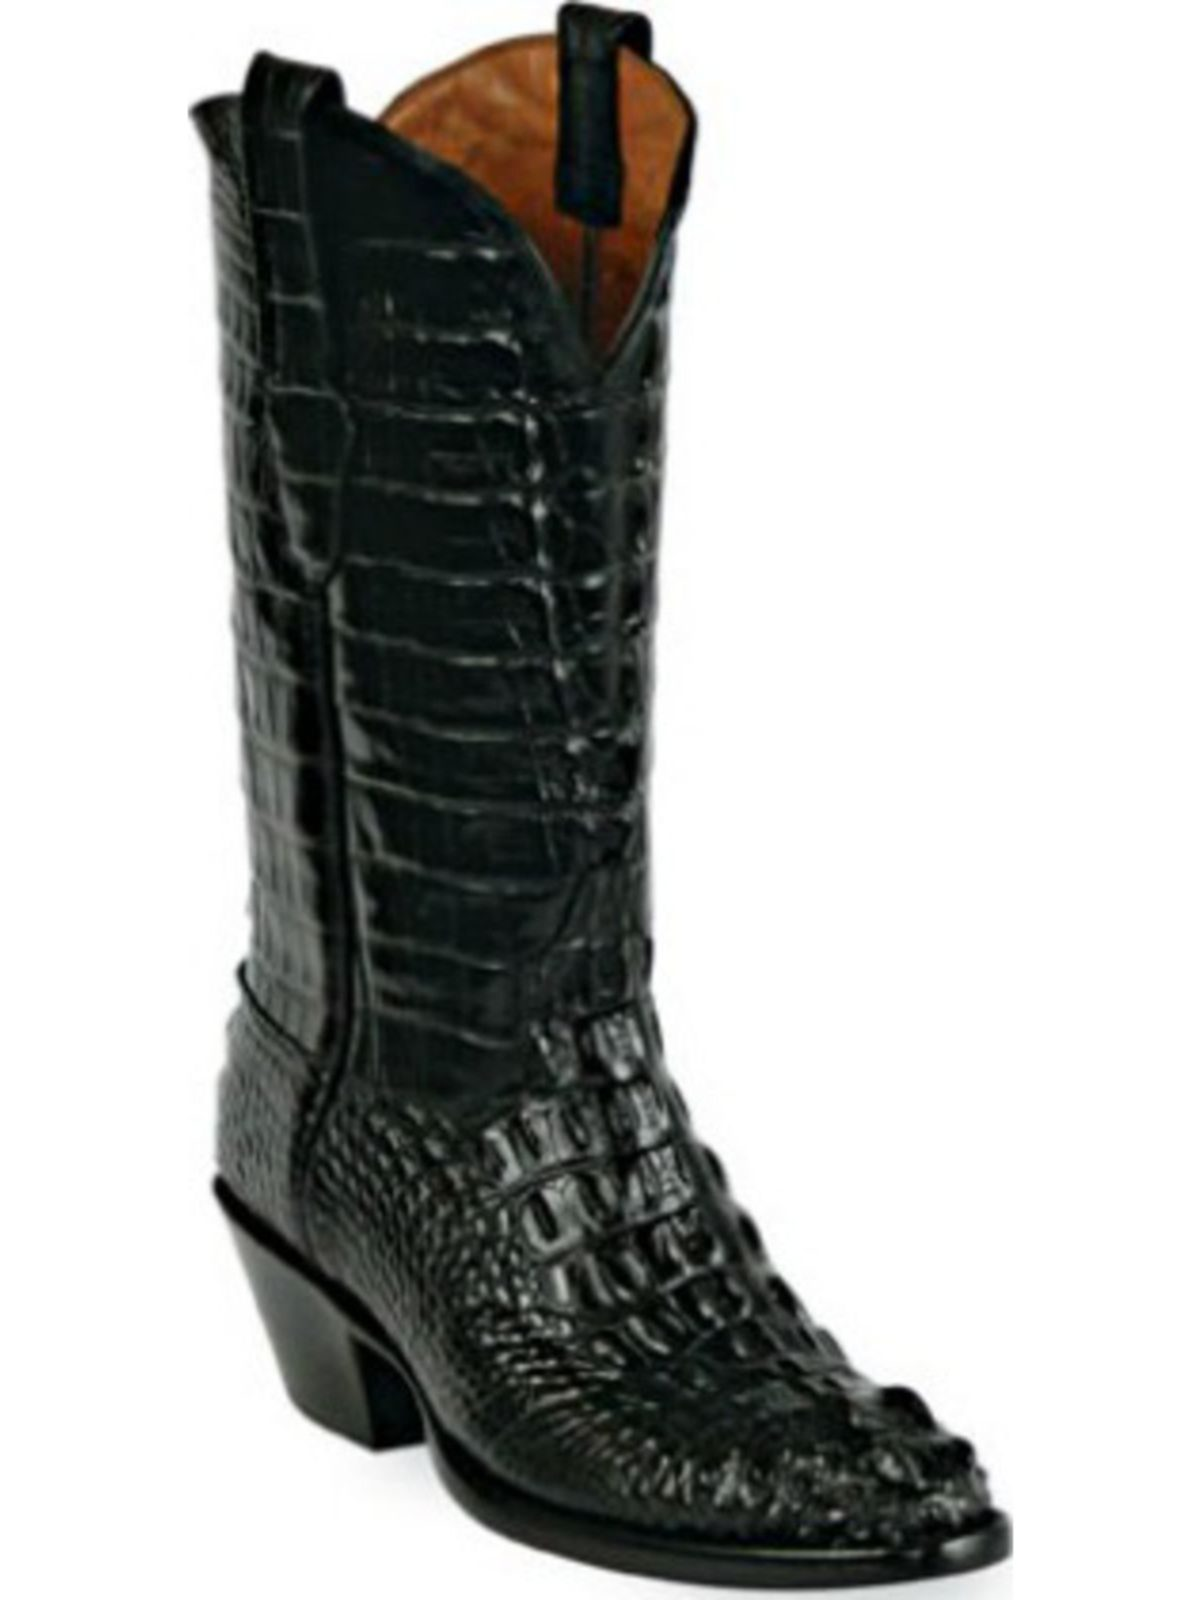 Black Dress Boots Mens